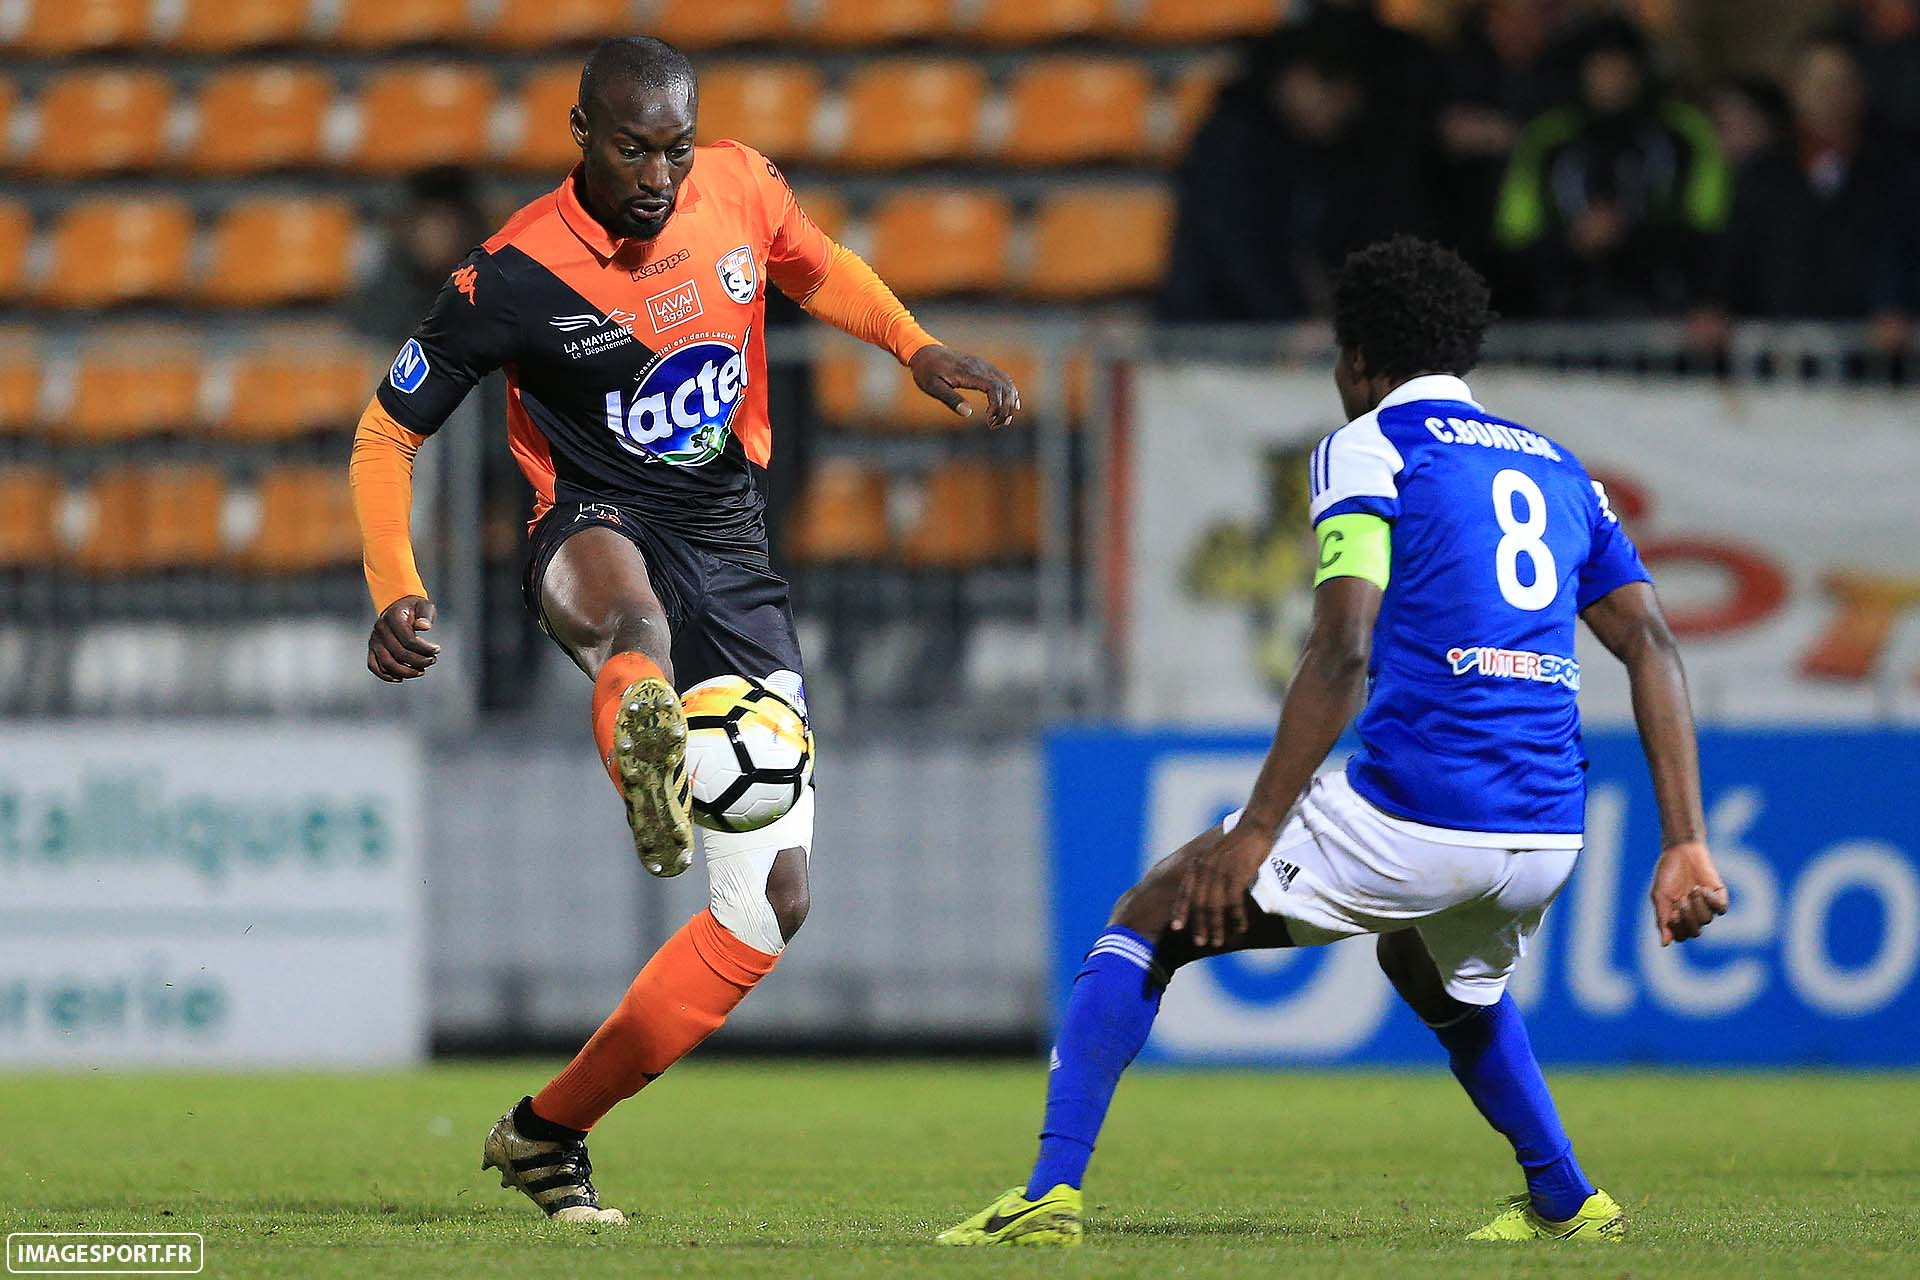 Bira DEMBELE (Stade Lavallois) / Charles BOATENG (US Avranches Mont-Saint-Michel)